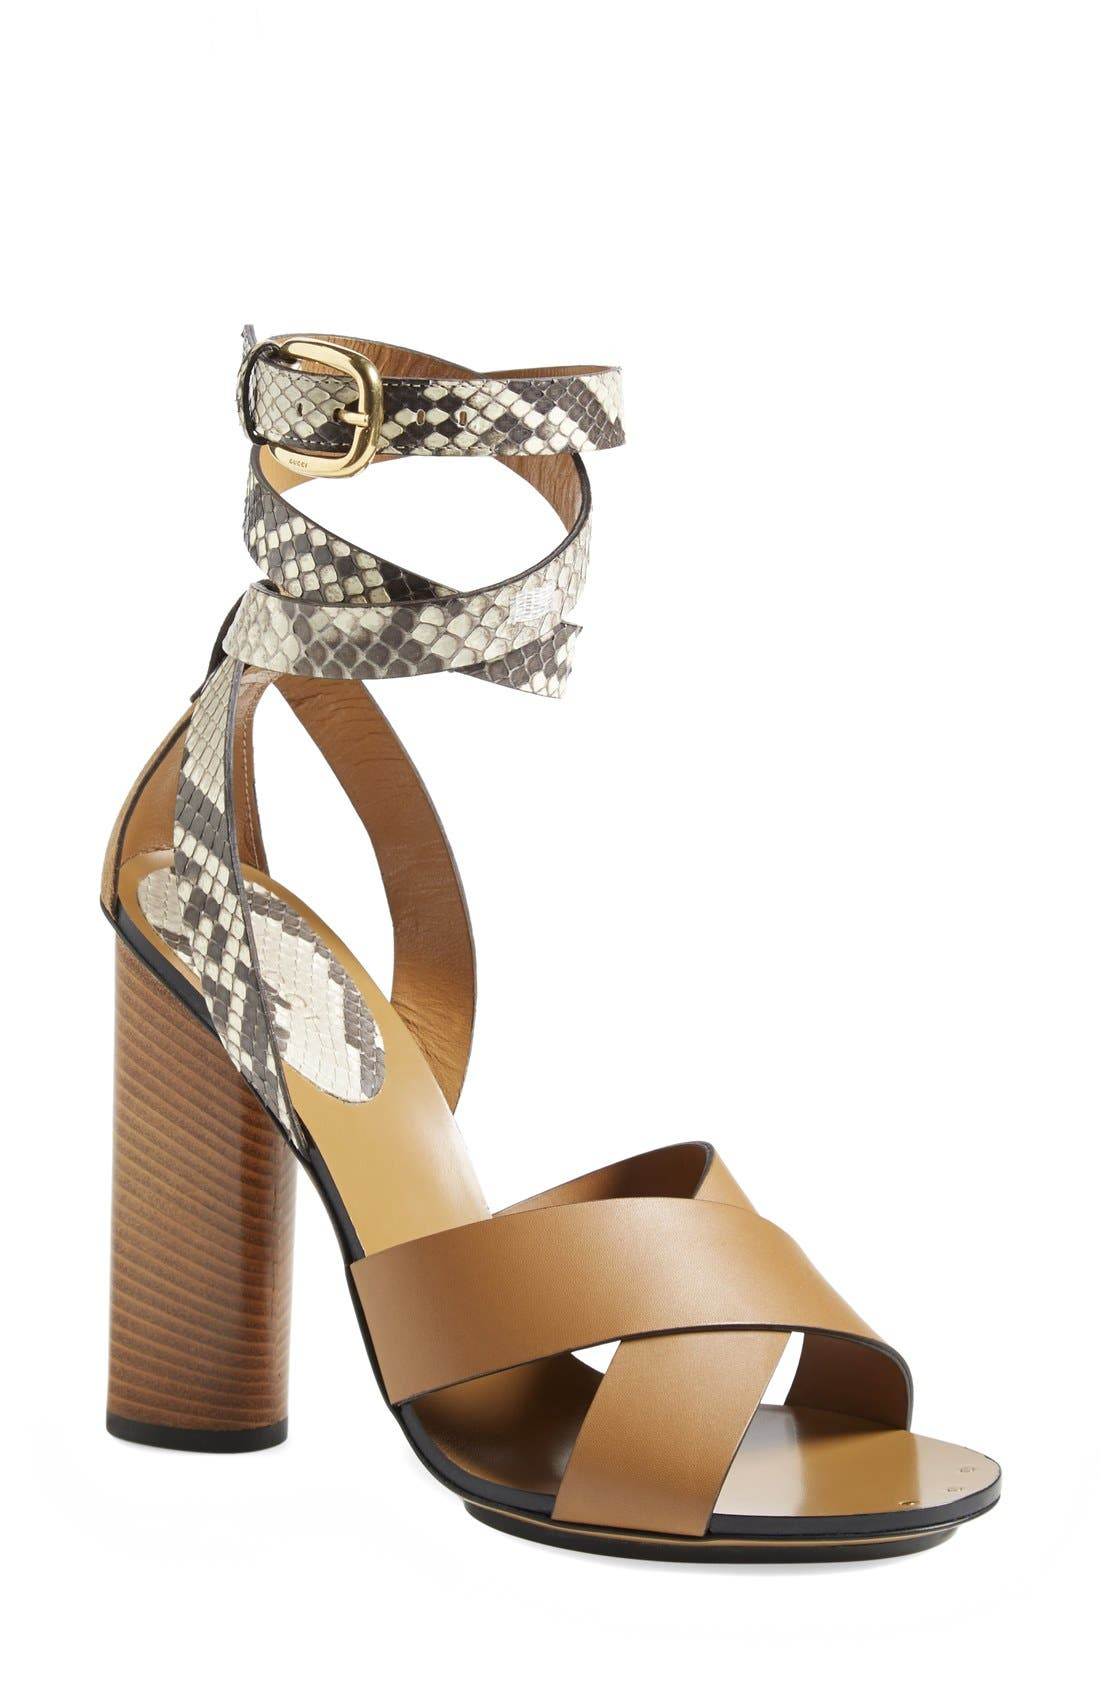 Alternate Image 1 Selected - Gucci 'Candy' Genuine Python & Leather Sandal (Women)